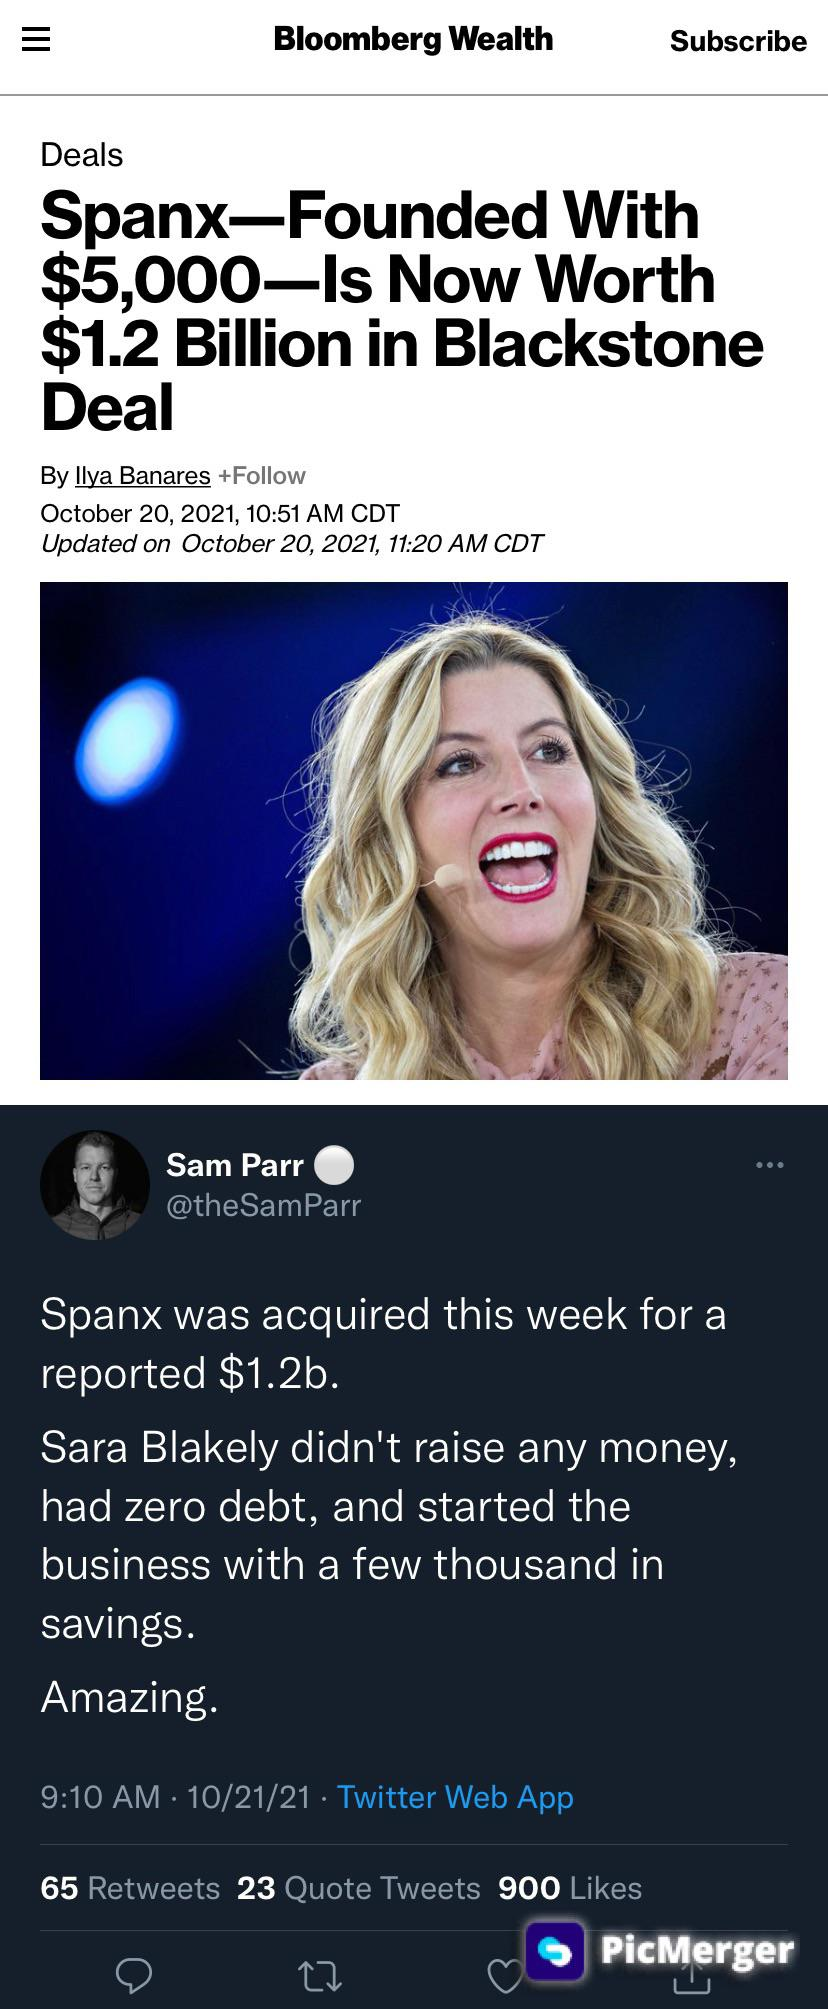 Bloomberg Wealth Subscribe Deals Spanx—Founded With $5,000—ls Now Worth $1.2 Billion In Blackstone Deal By Llya Banares +Fo||ow October 20, 2021, 10:51 AM CDT Updated On October 20, 2021, 11:20 AM CDT -' Sam Parr . A, @theSam Parr Spanx Was Acquired This Week For A Reported $1.2b. Sara Blakely Didn't Raise Any Money, Had Zero Debt, And Started The Business With A Few Thousand In Savings. Amazing. 9:10 AM -10/21/21 - Twitter Web App 65 Retweets 23 Quote Tweets 900 Likes Q U Q Q . PlclLerger https://inspirational.ly